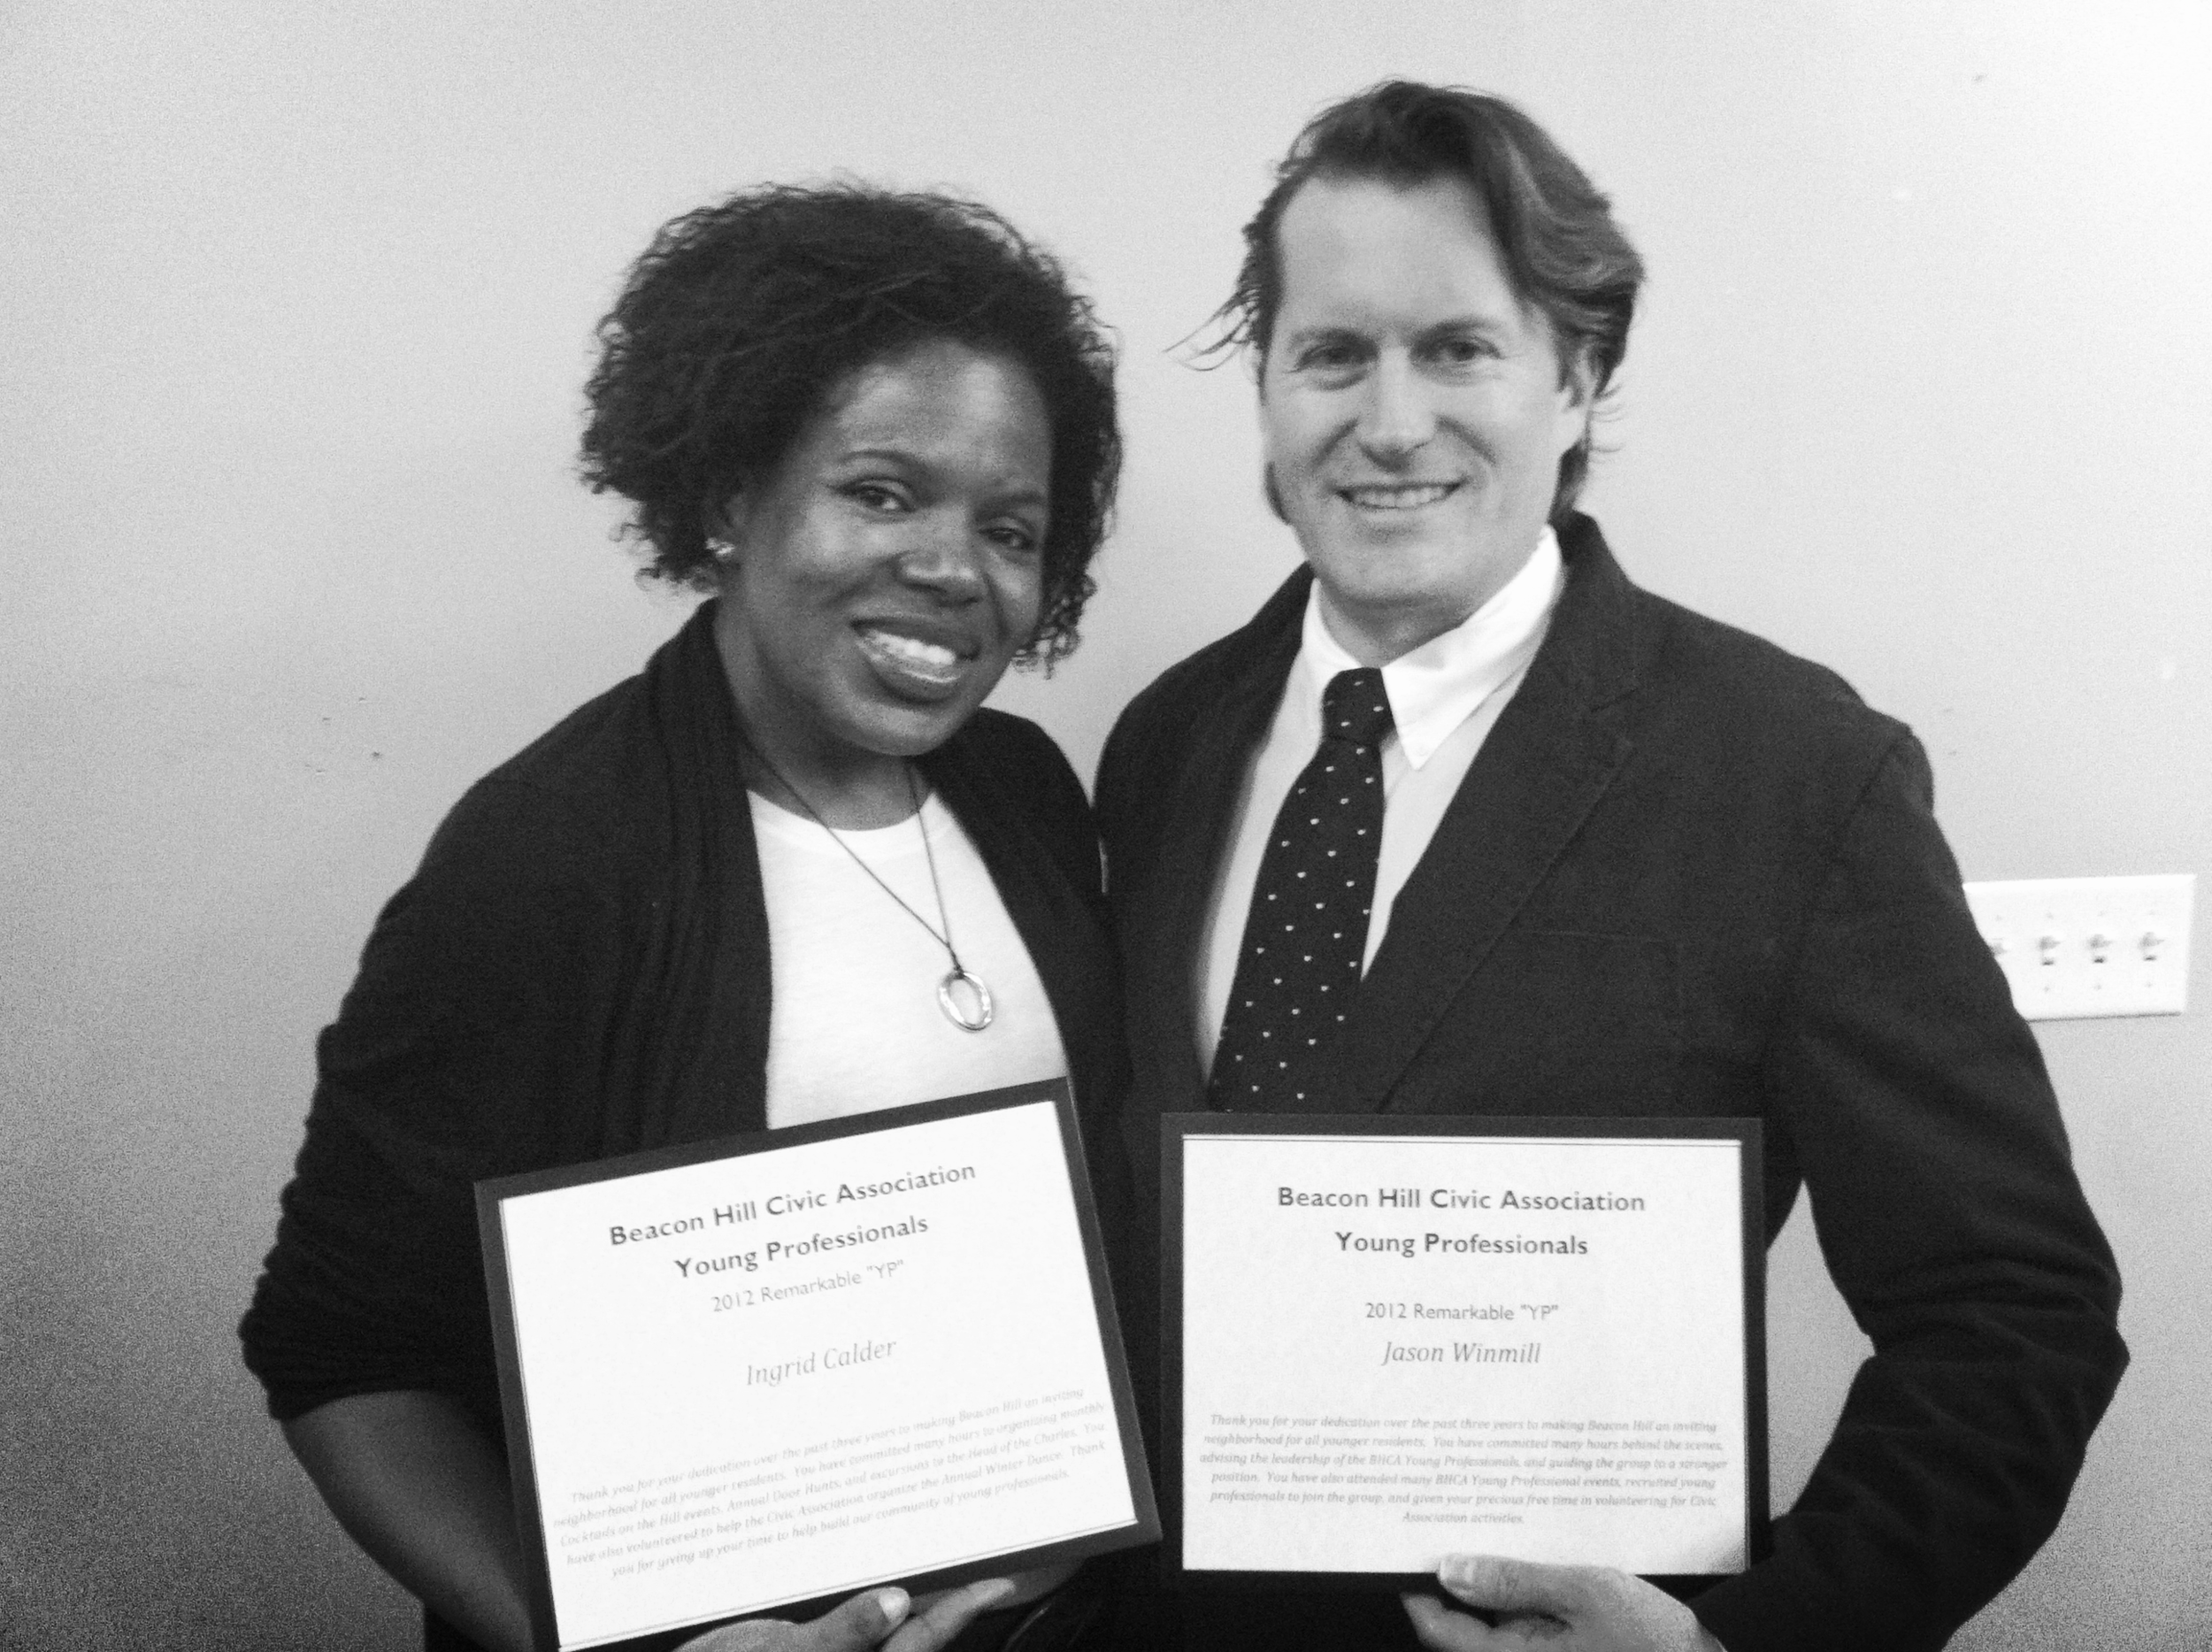 Jason Winmill & Ingrid Calder, the recipients of the Young Professionals Award.